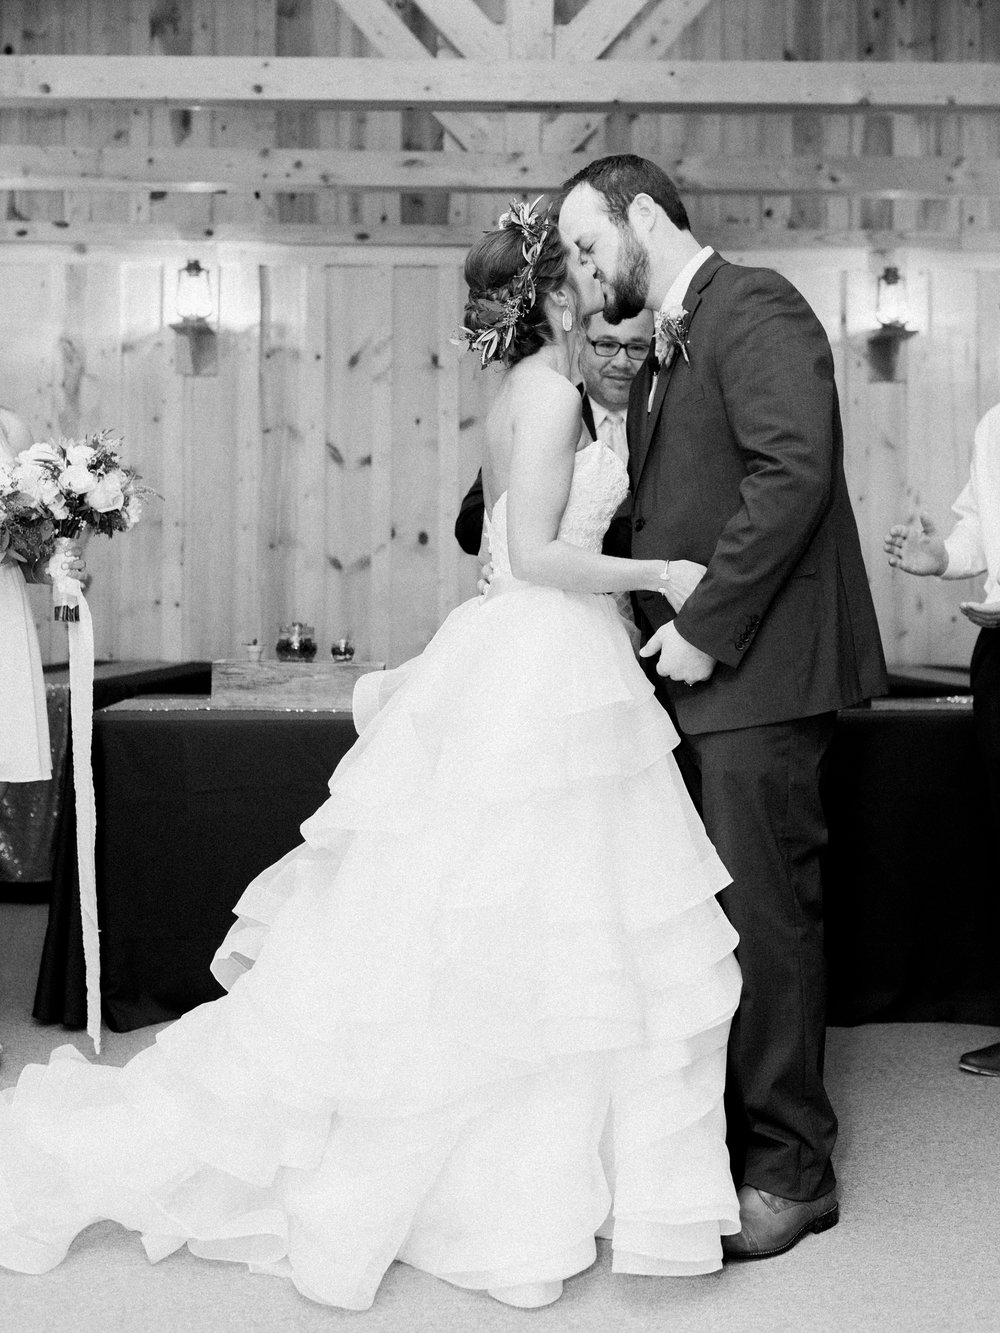 Hill Country Spring Wedding at Red Bud Hall | Austin Wedding Photographer | Film Wedding Photographer | Britni Dean Photography | Rainy Day Wedding Inspiration | bride and groom first kiss